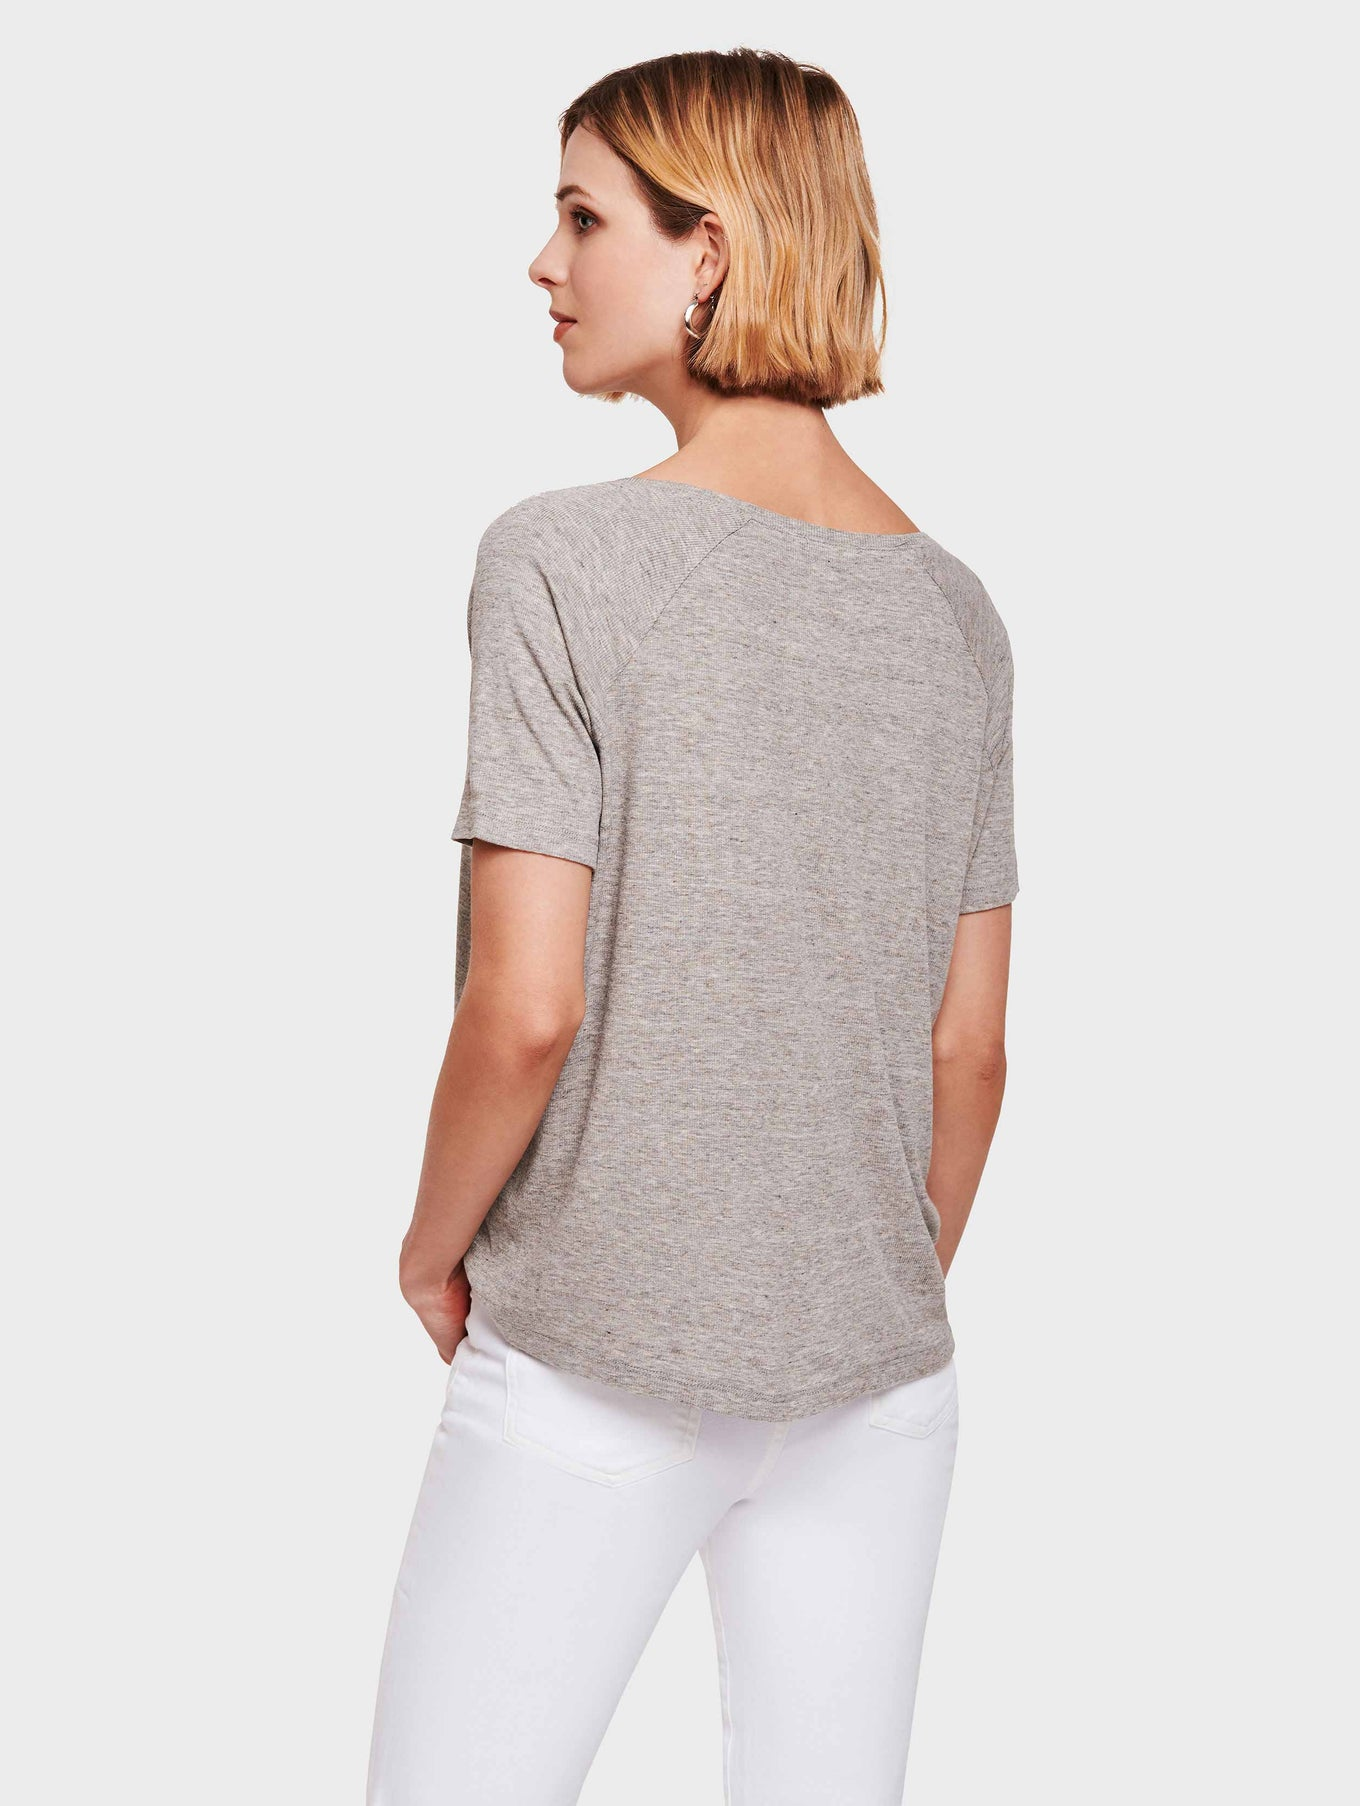 Rib Jersey Easy Crewneck Top - Grey Heather - Image 3